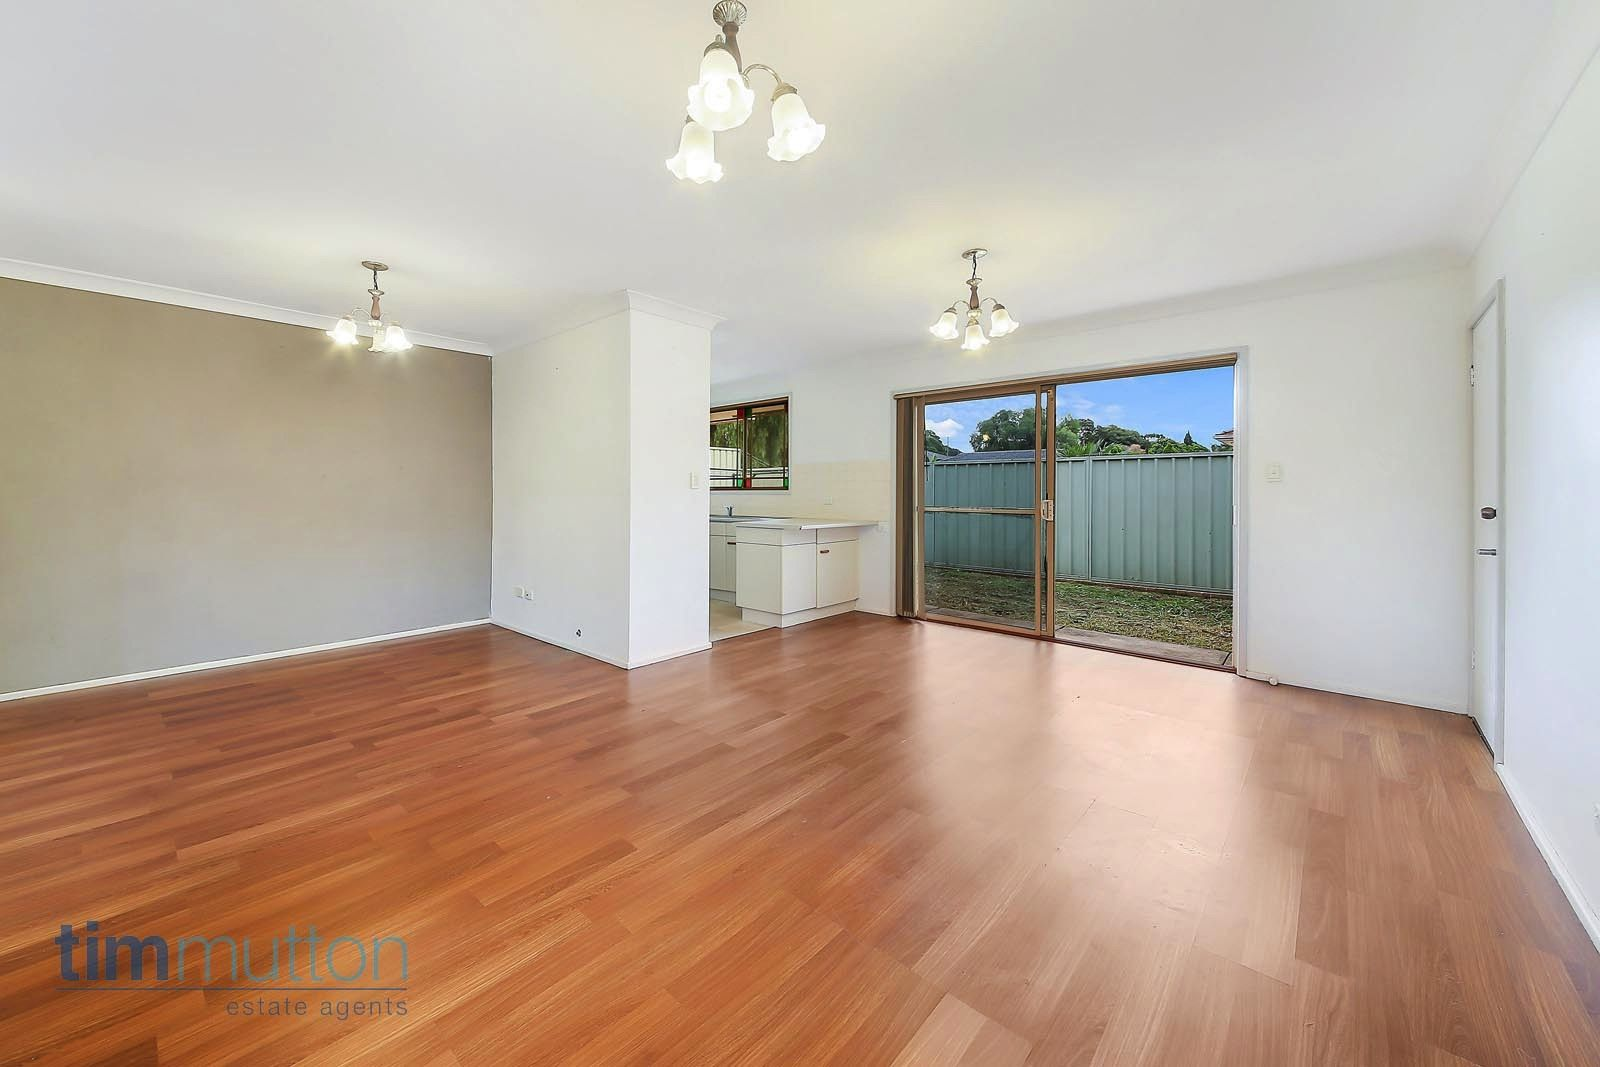 115 Taylor St, Condell Park NSW 2200, Image 2